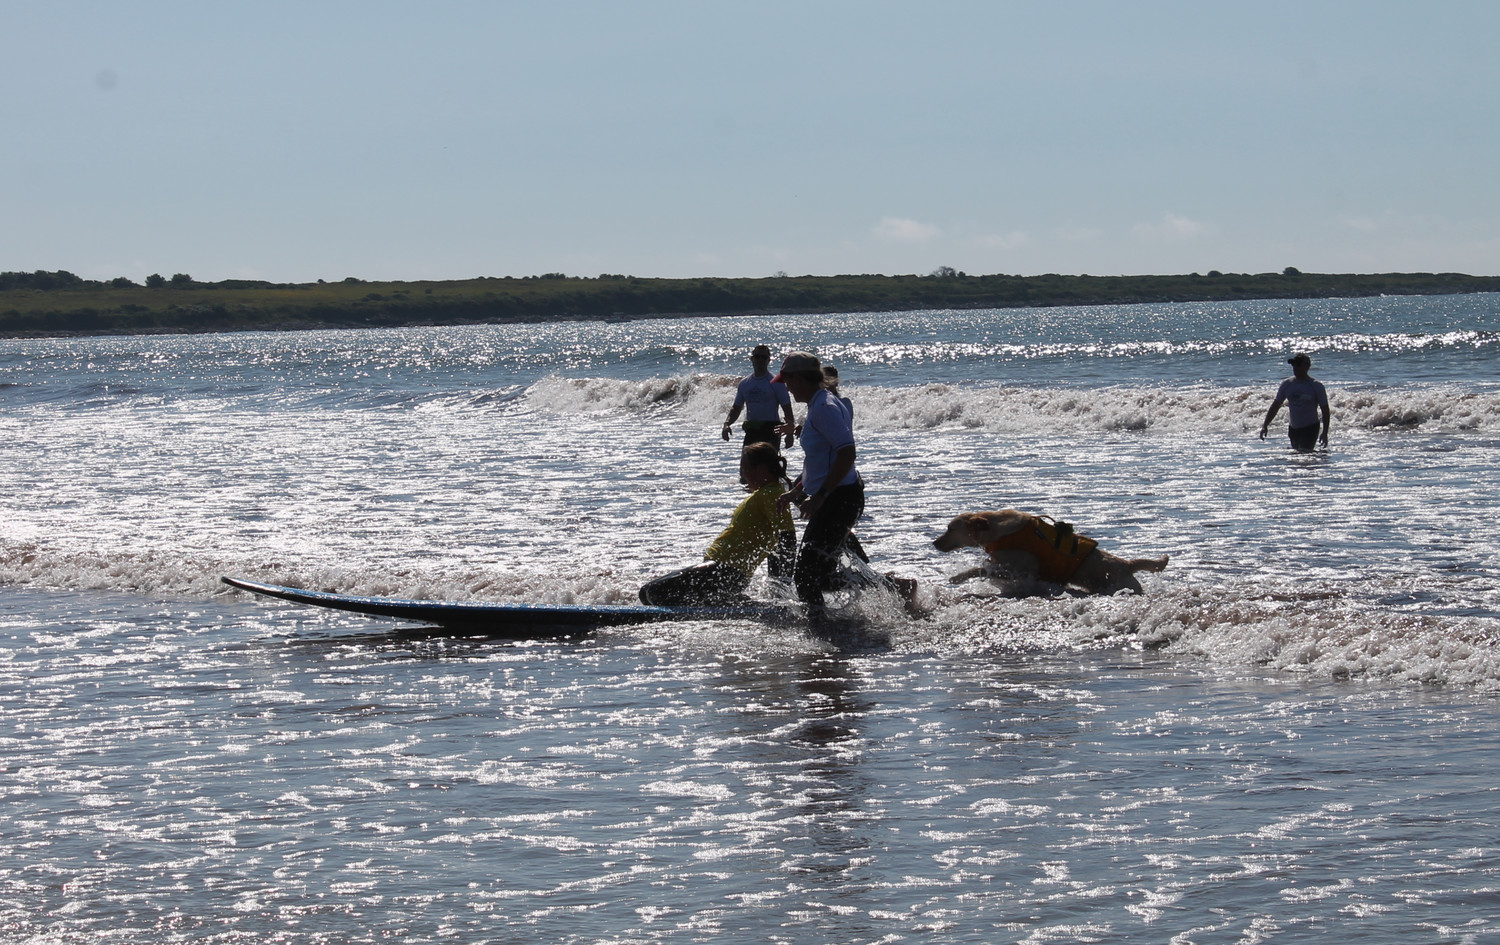 Even the dogs had fun jumping in the waves and surfing with their owners during AmpSurf's event on Saturday at Second Beach